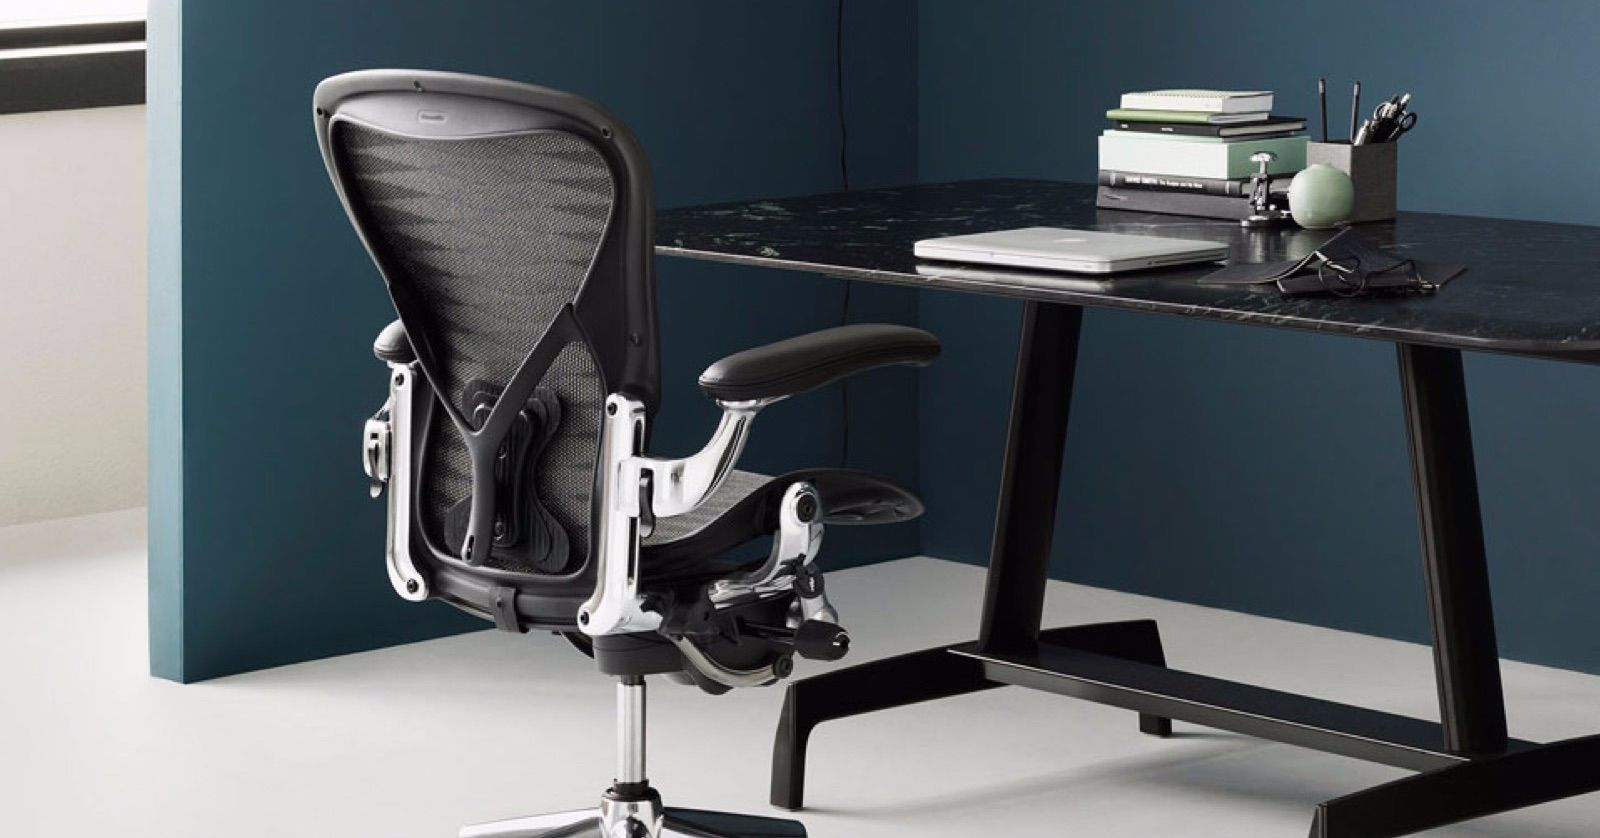 Aeron In Chrome Via Hermanmillern N N N N N Minimal Interiordesign Officedesign Furniture Officefurnitu Comfy Leather Chair Workplace Design Office Design